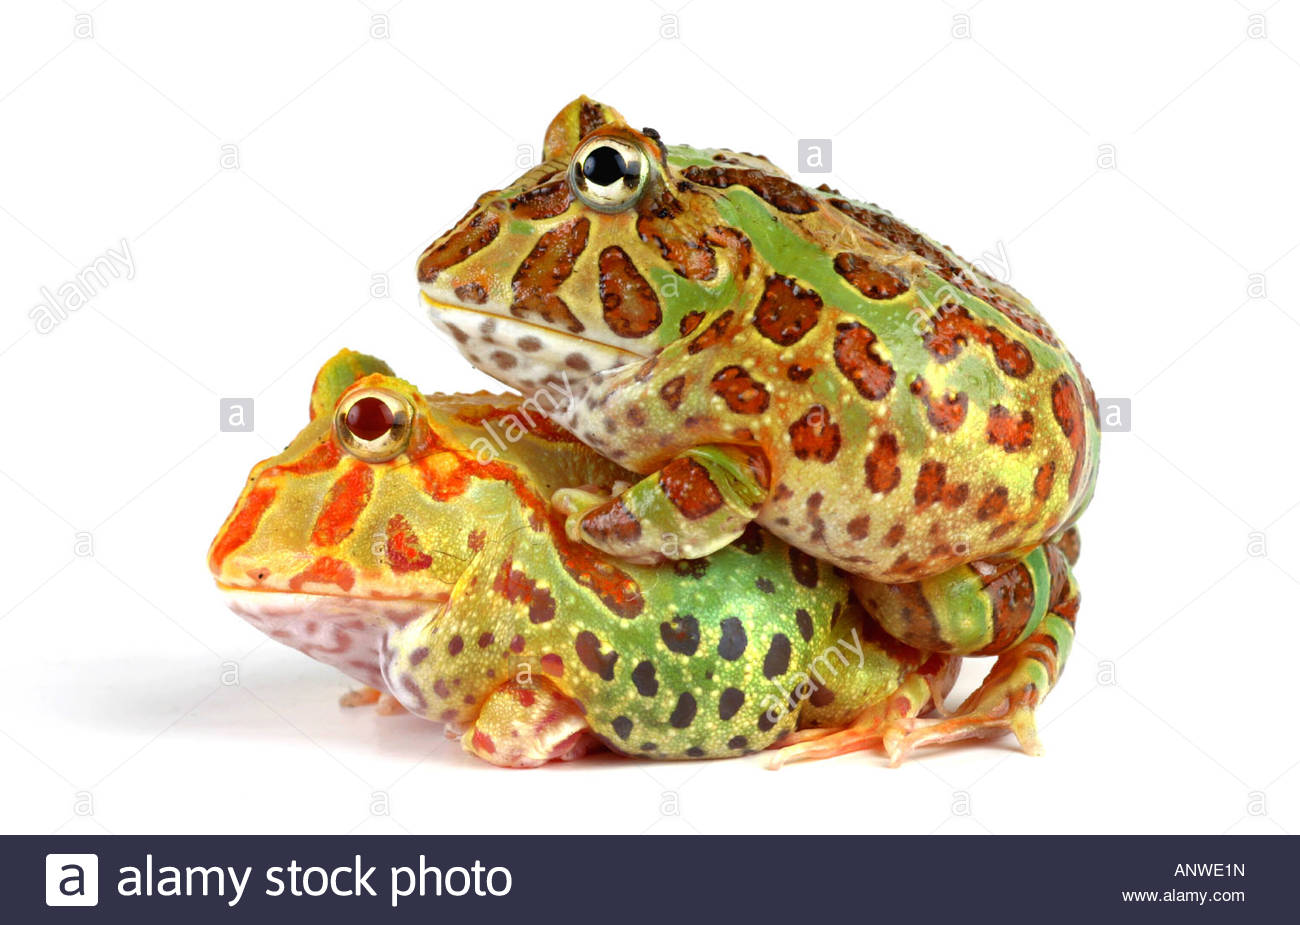 Amazing Pac-man Frog Pictures & Backgrounds